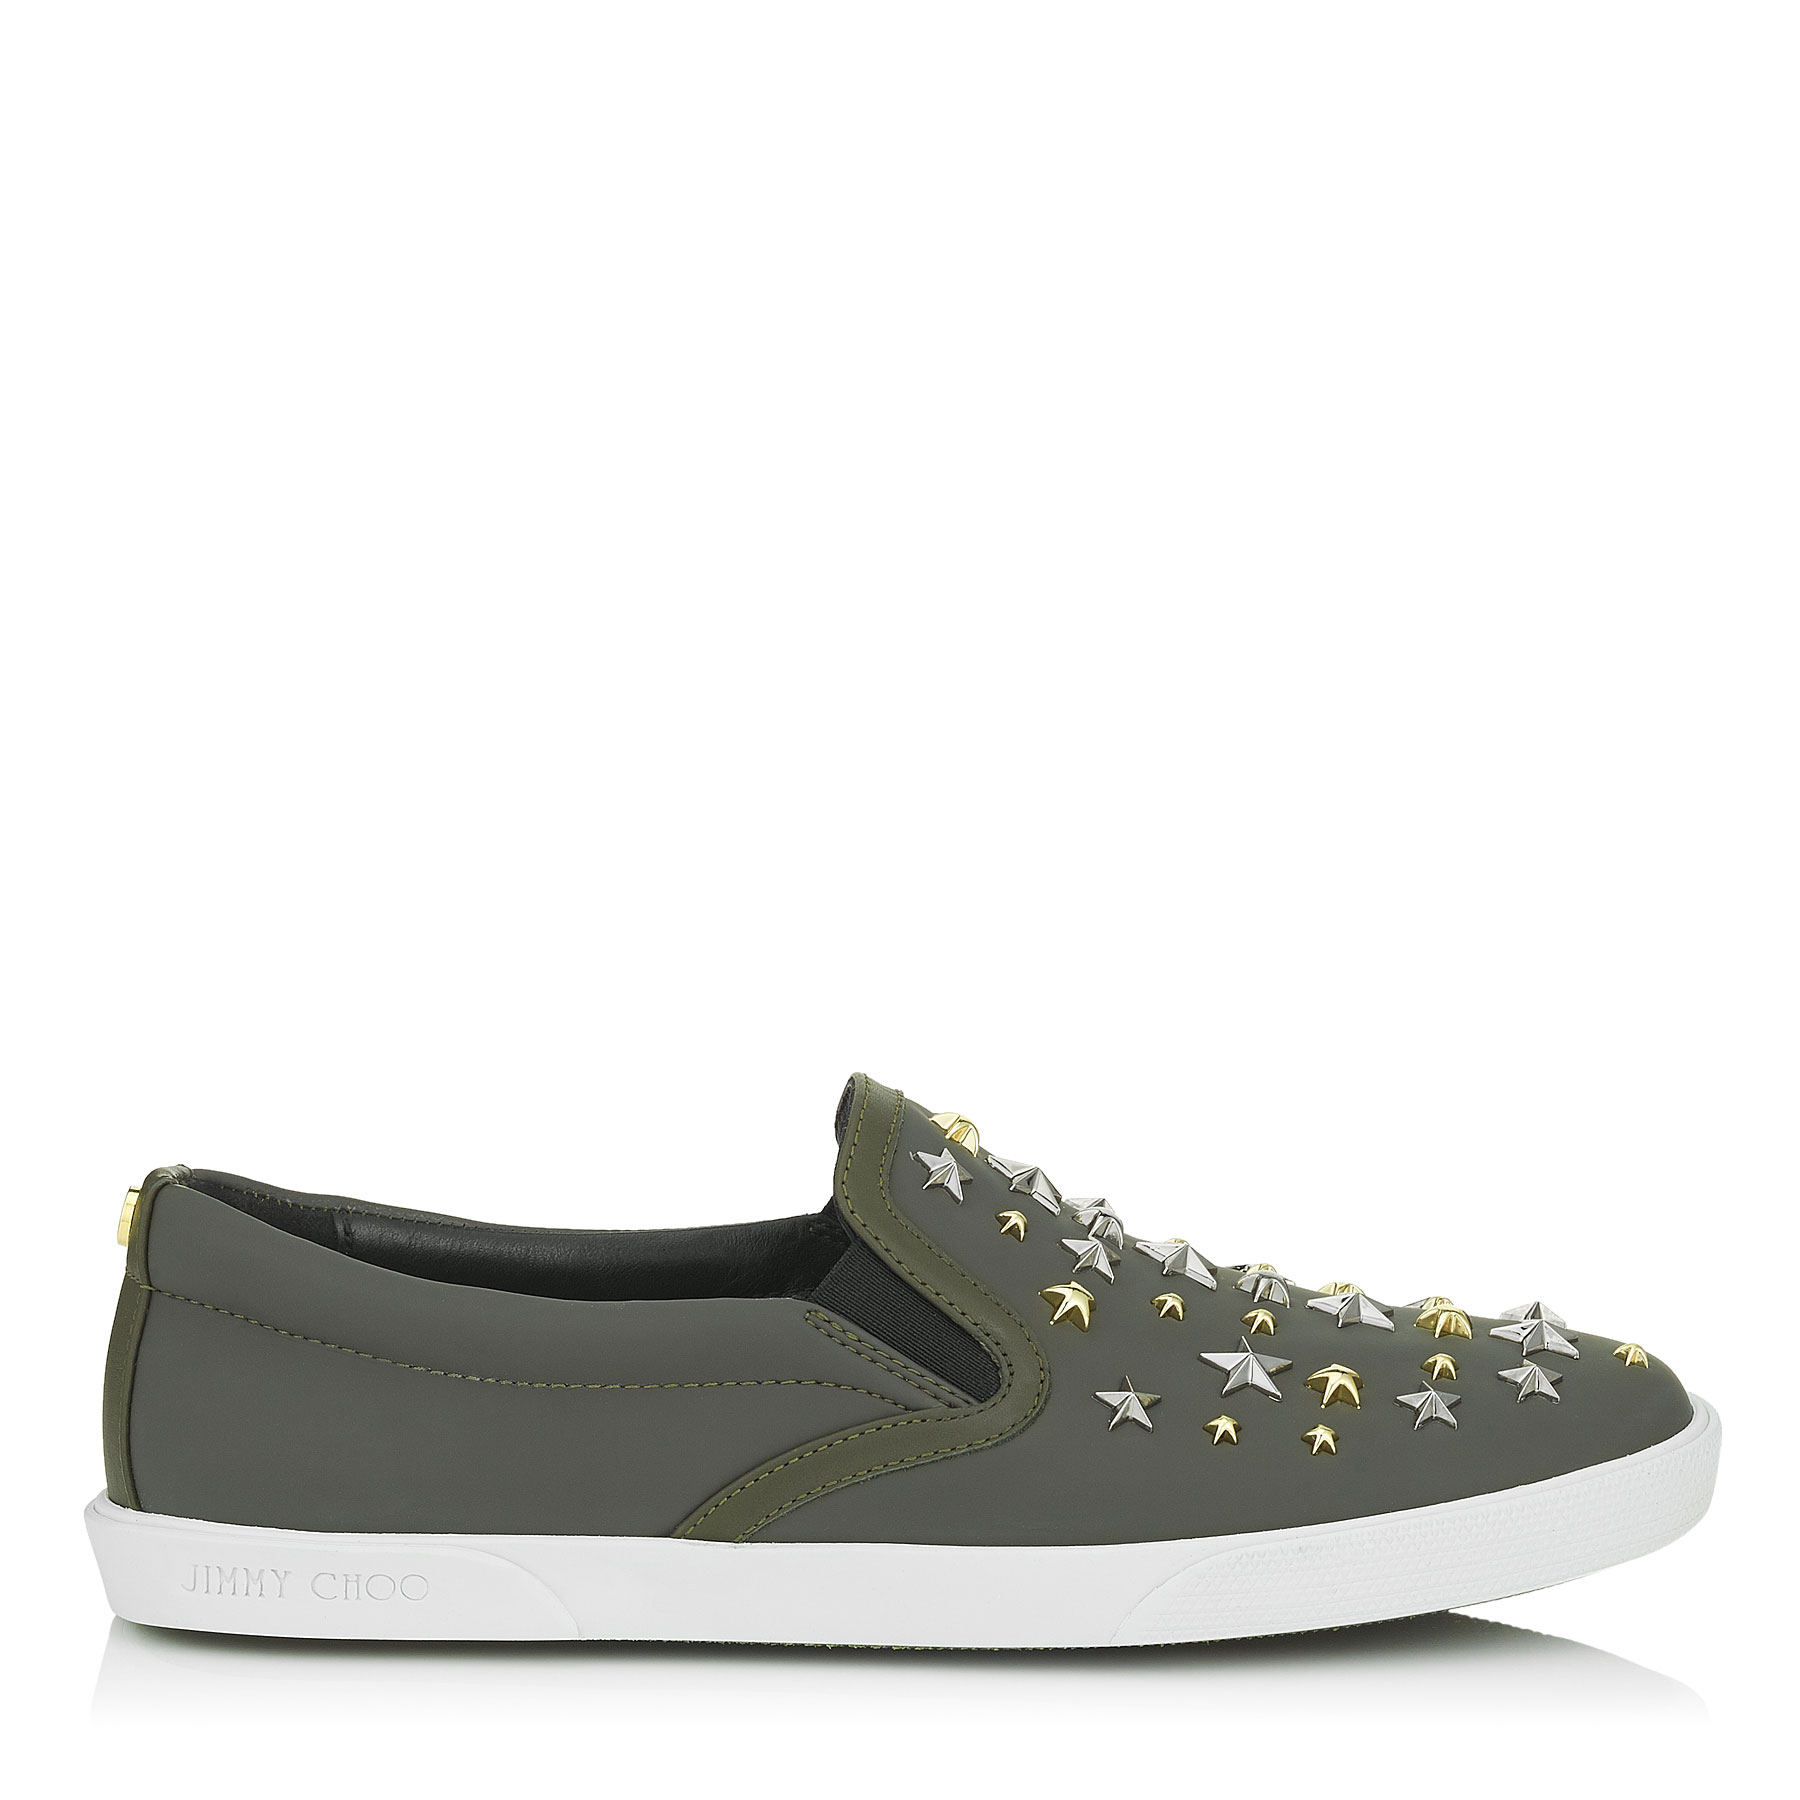 DEMI Army Green Metallic Mix Rubberized Leather with Stars Slip On Trainers